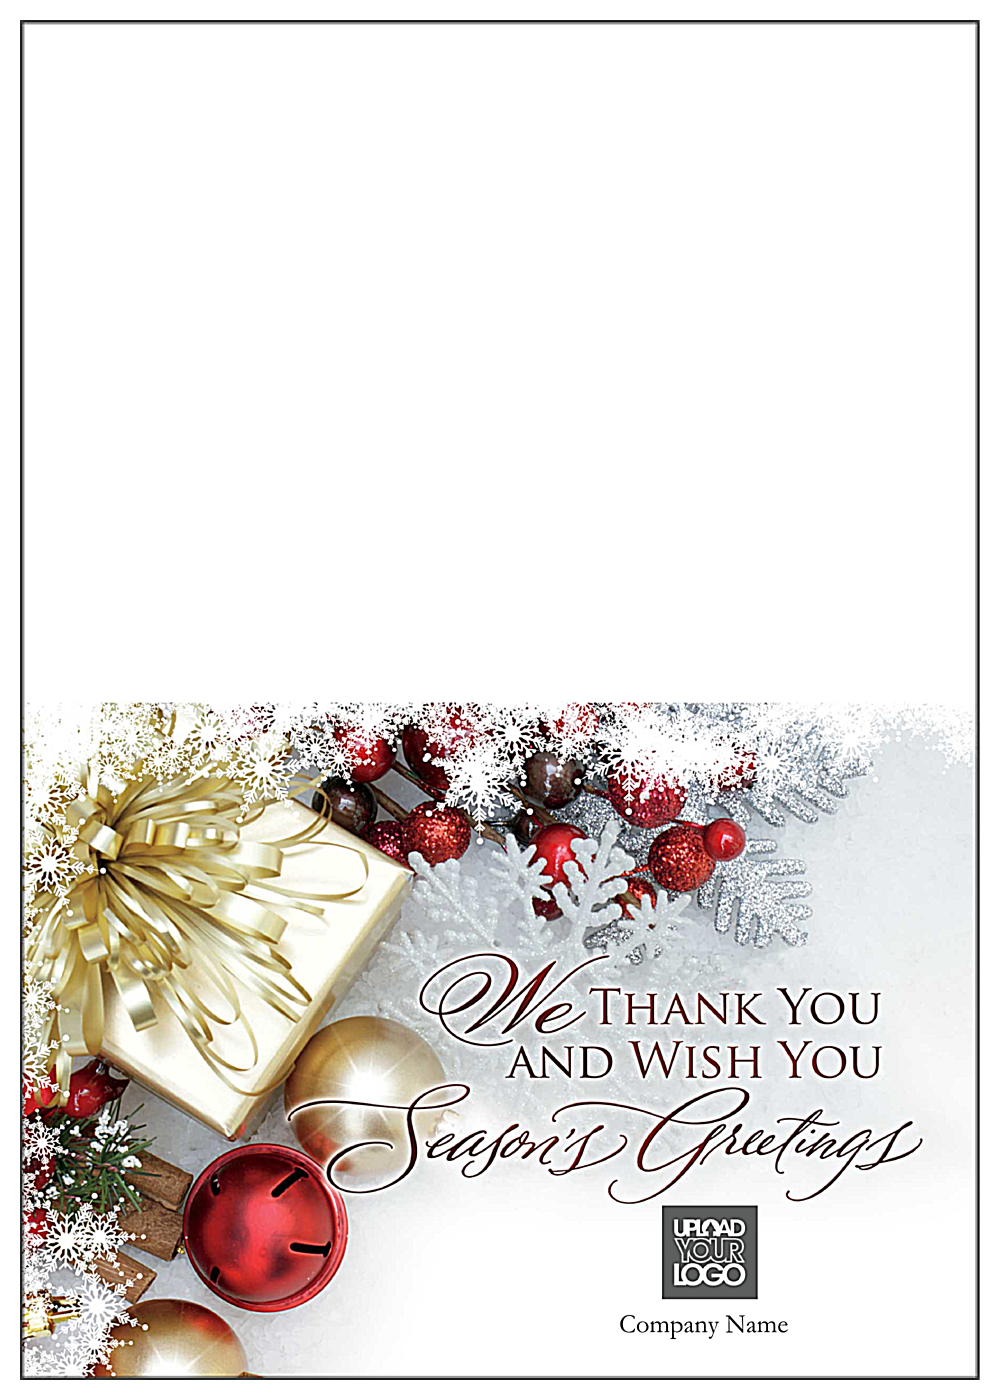 Golden Greetings front - Greeting Cards Maker